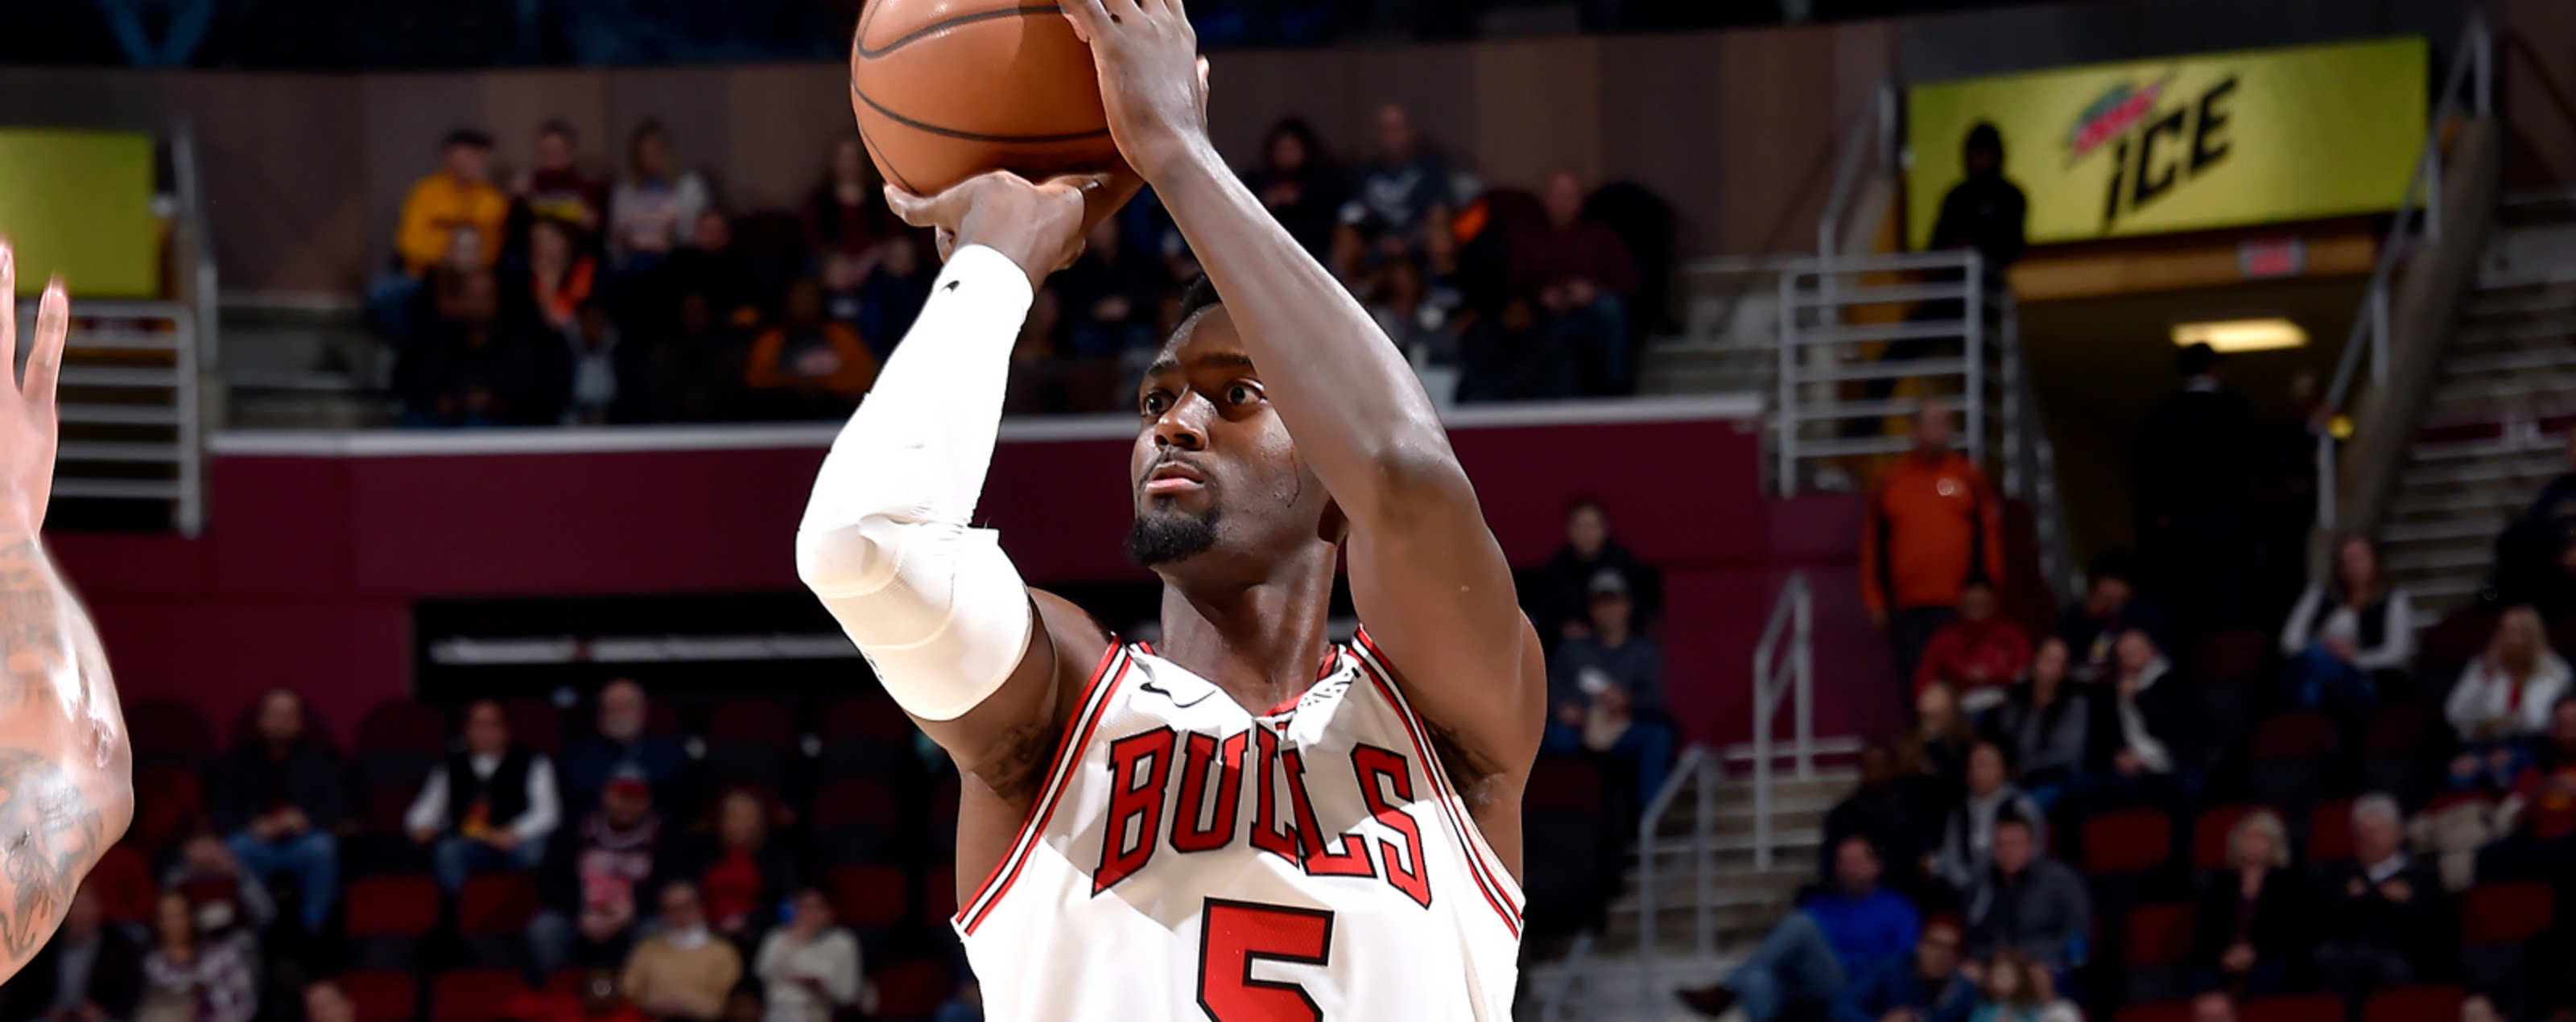 Bobby Portis shoots against the Cleveland Cavaliers.